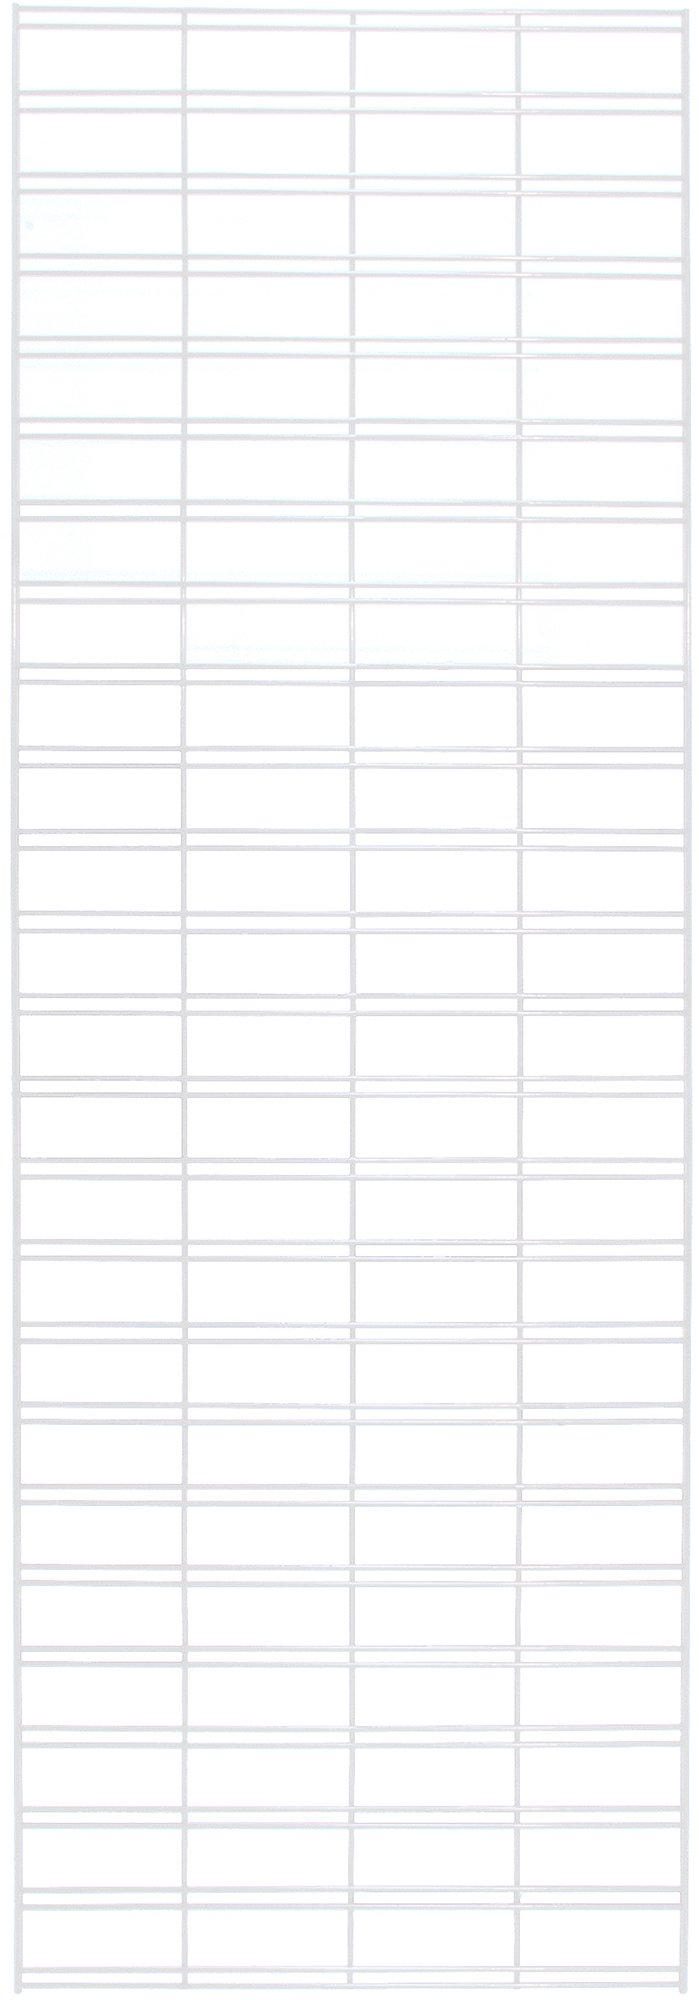 KC Store Fixtures A04255 Slatgrid Panel, 2' x 6', White (Pack of 3)